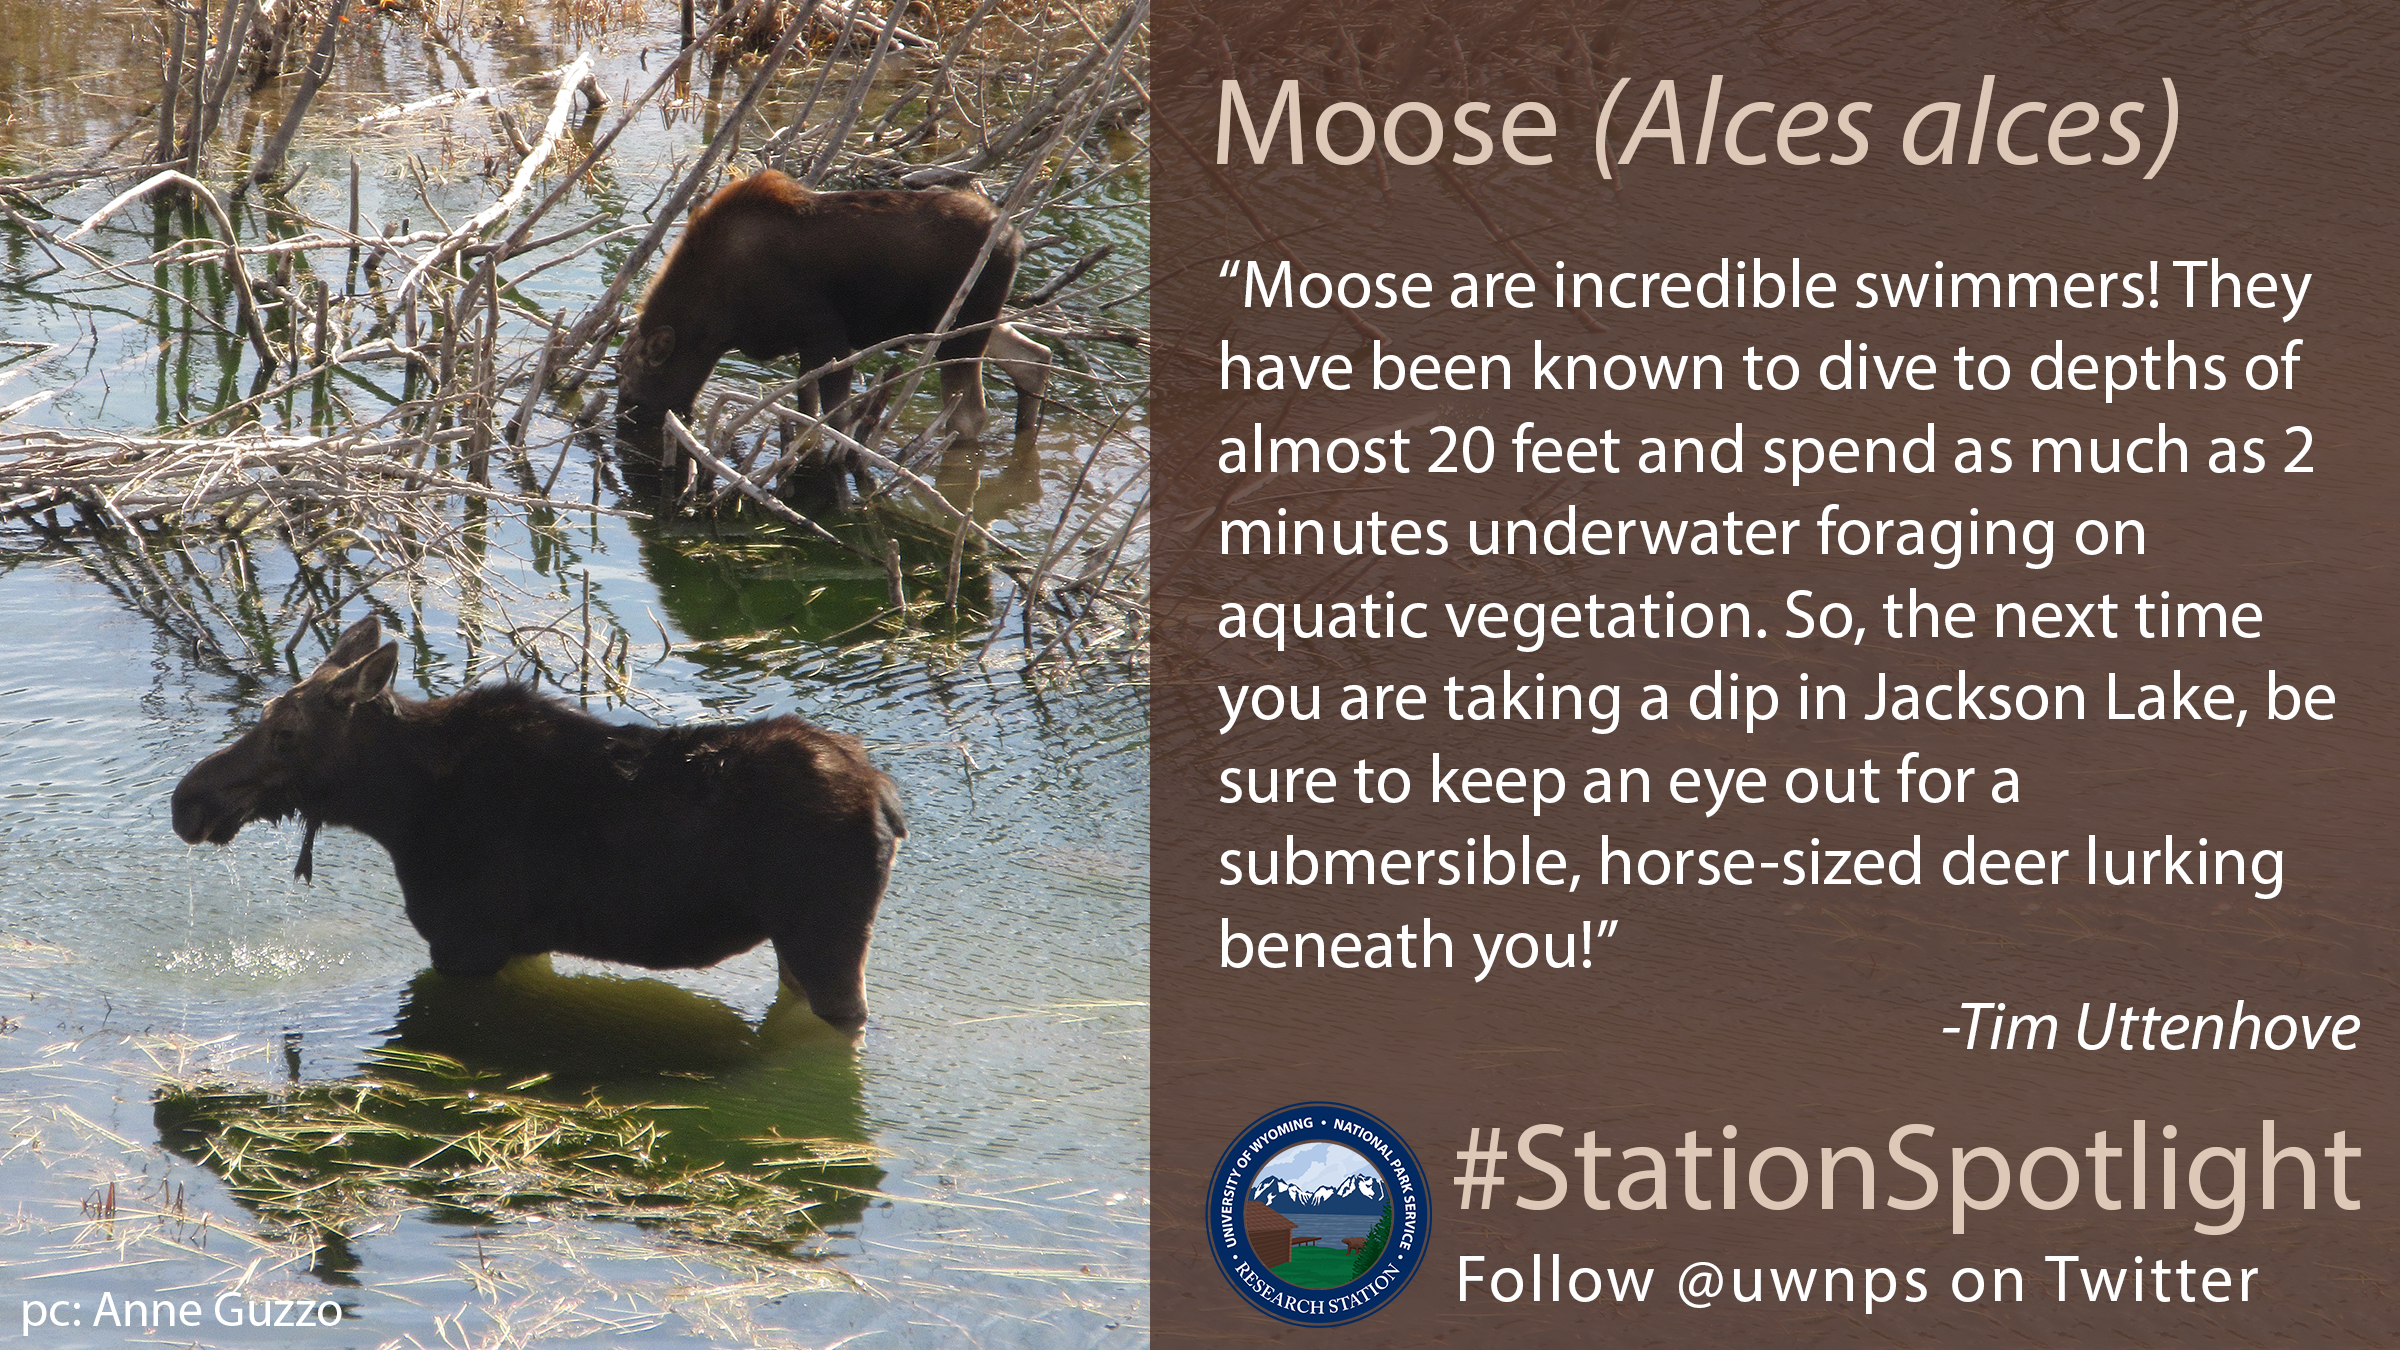 two moose half submerged in a pond with woody plants around them